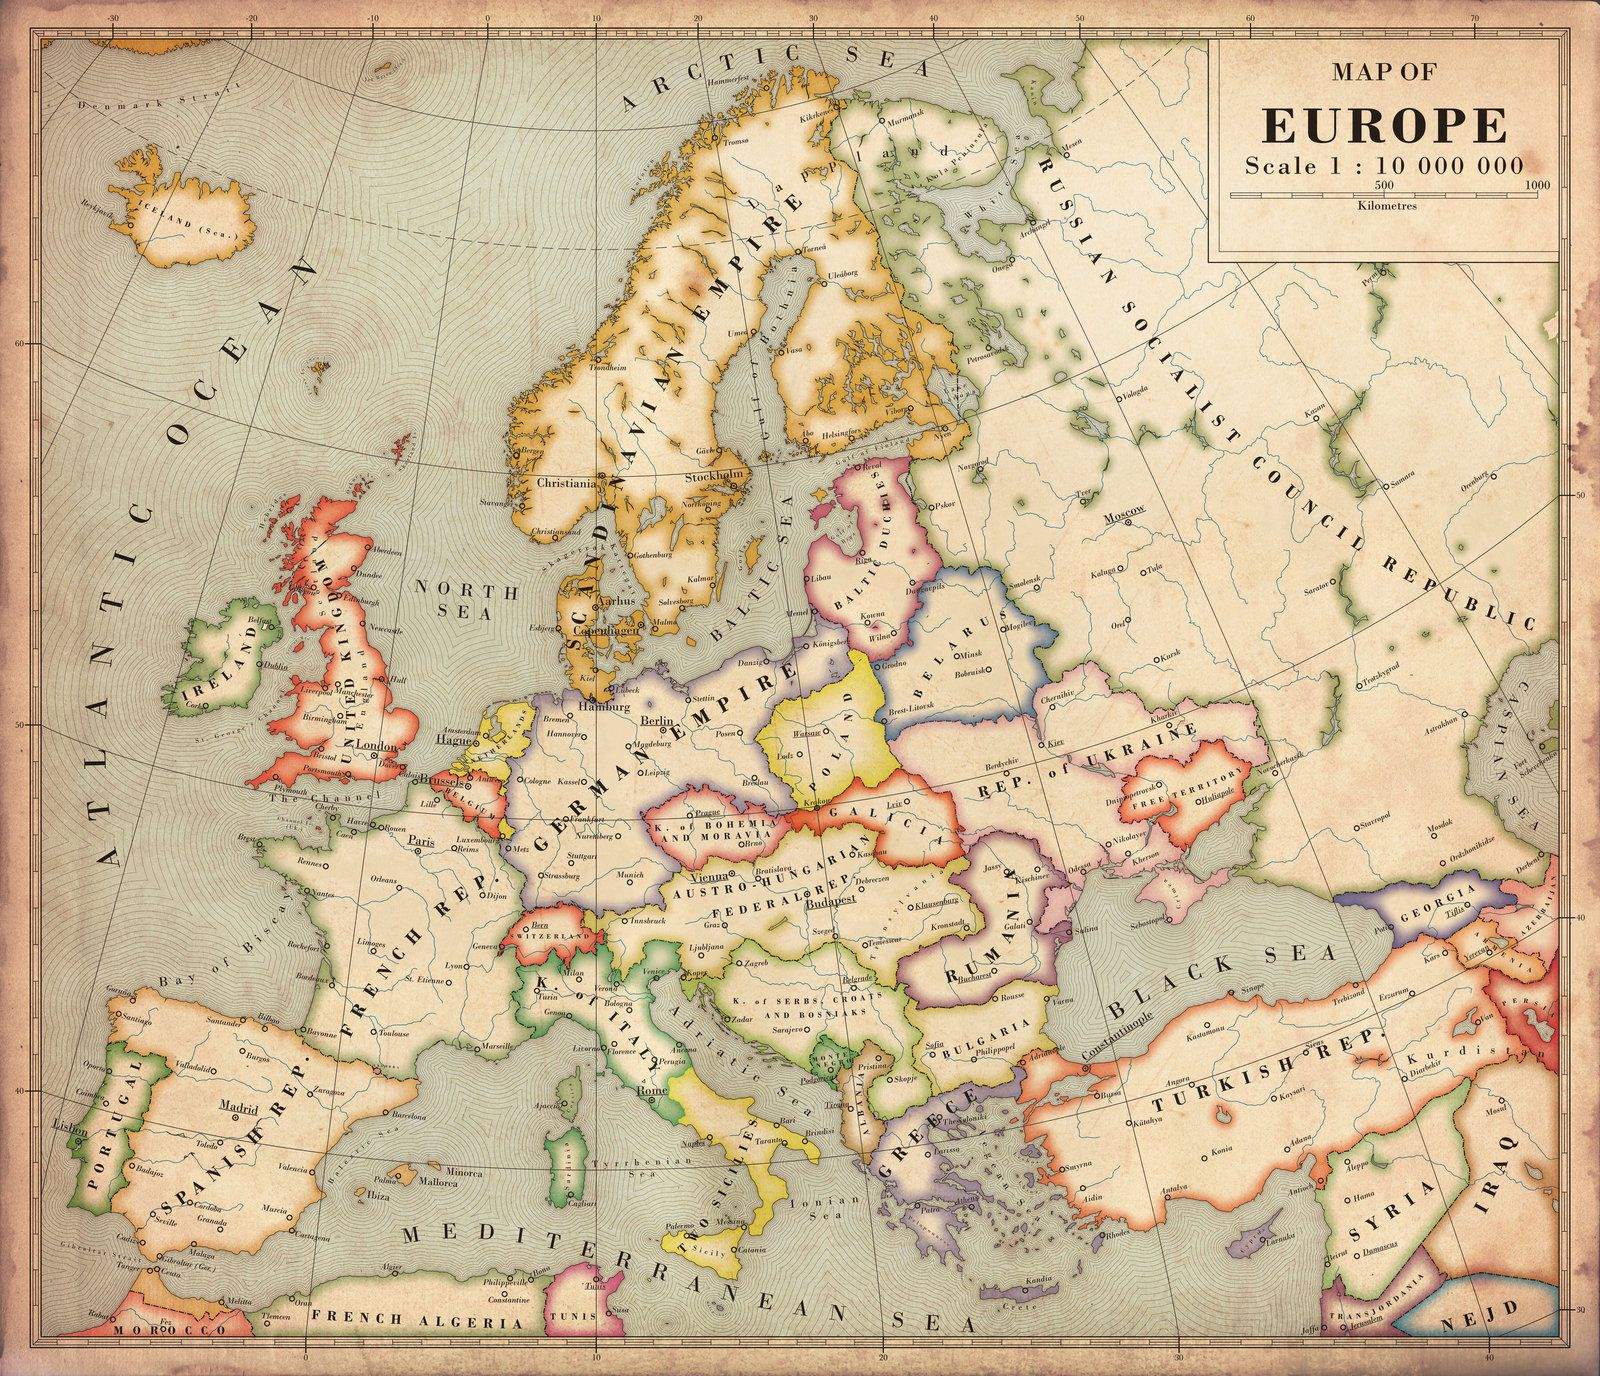 Alternate History Map Of Europe V By Regicollis On DeviantArt - Alternate history us map